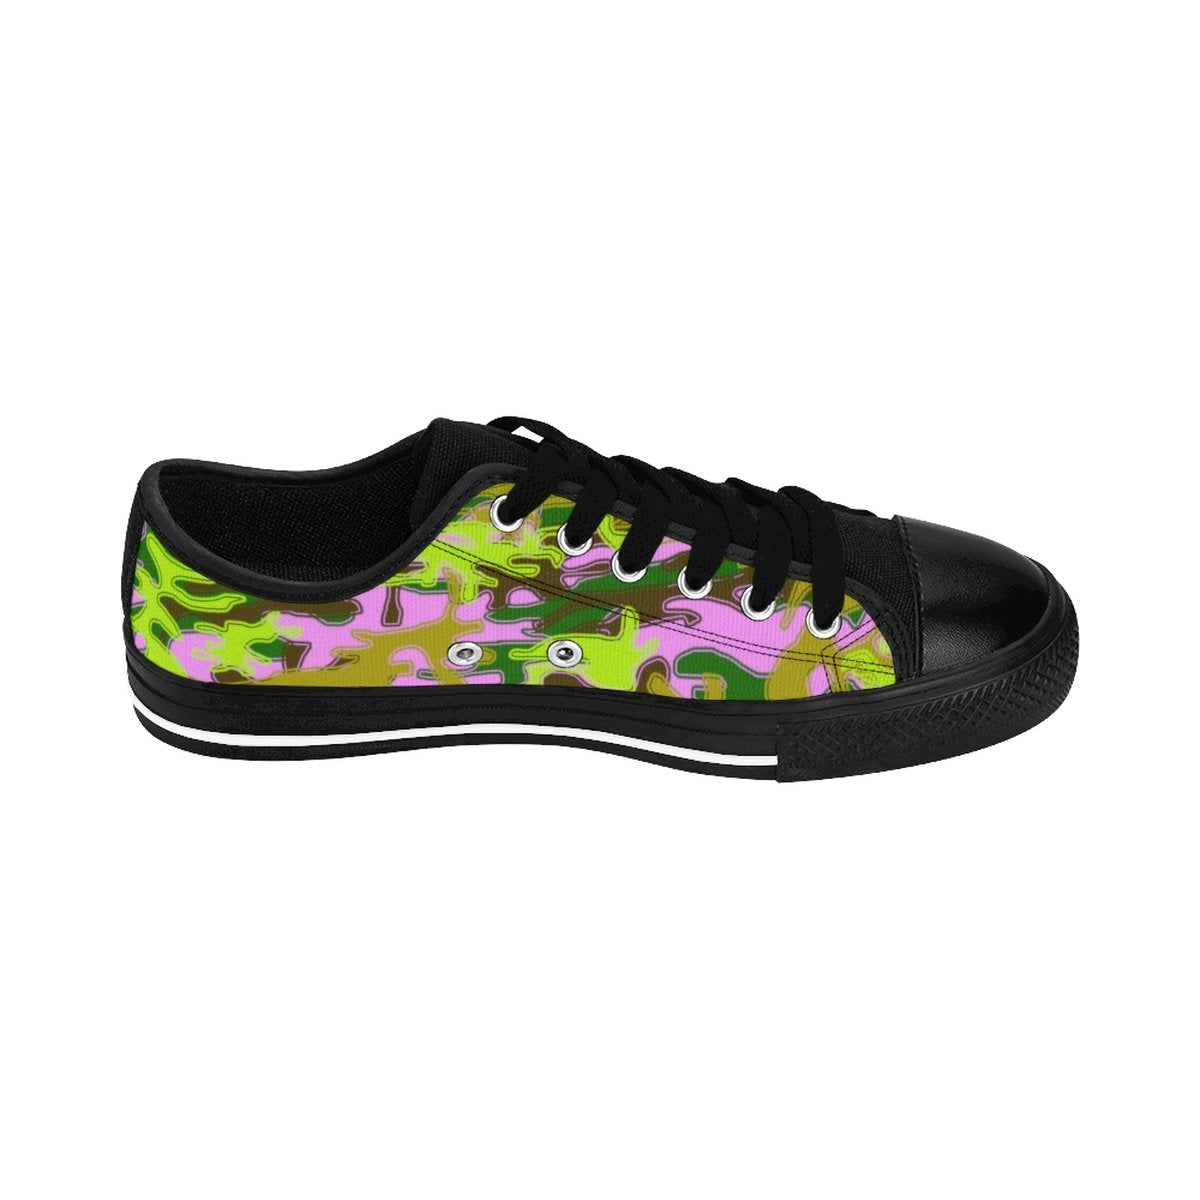 Pink Green Camouflage Military Print Premium Men's Low Top Canvas Sneakers Shoes-Men's Low Top Sneakers-Black-US 9-Heidi Kimura Art LLC